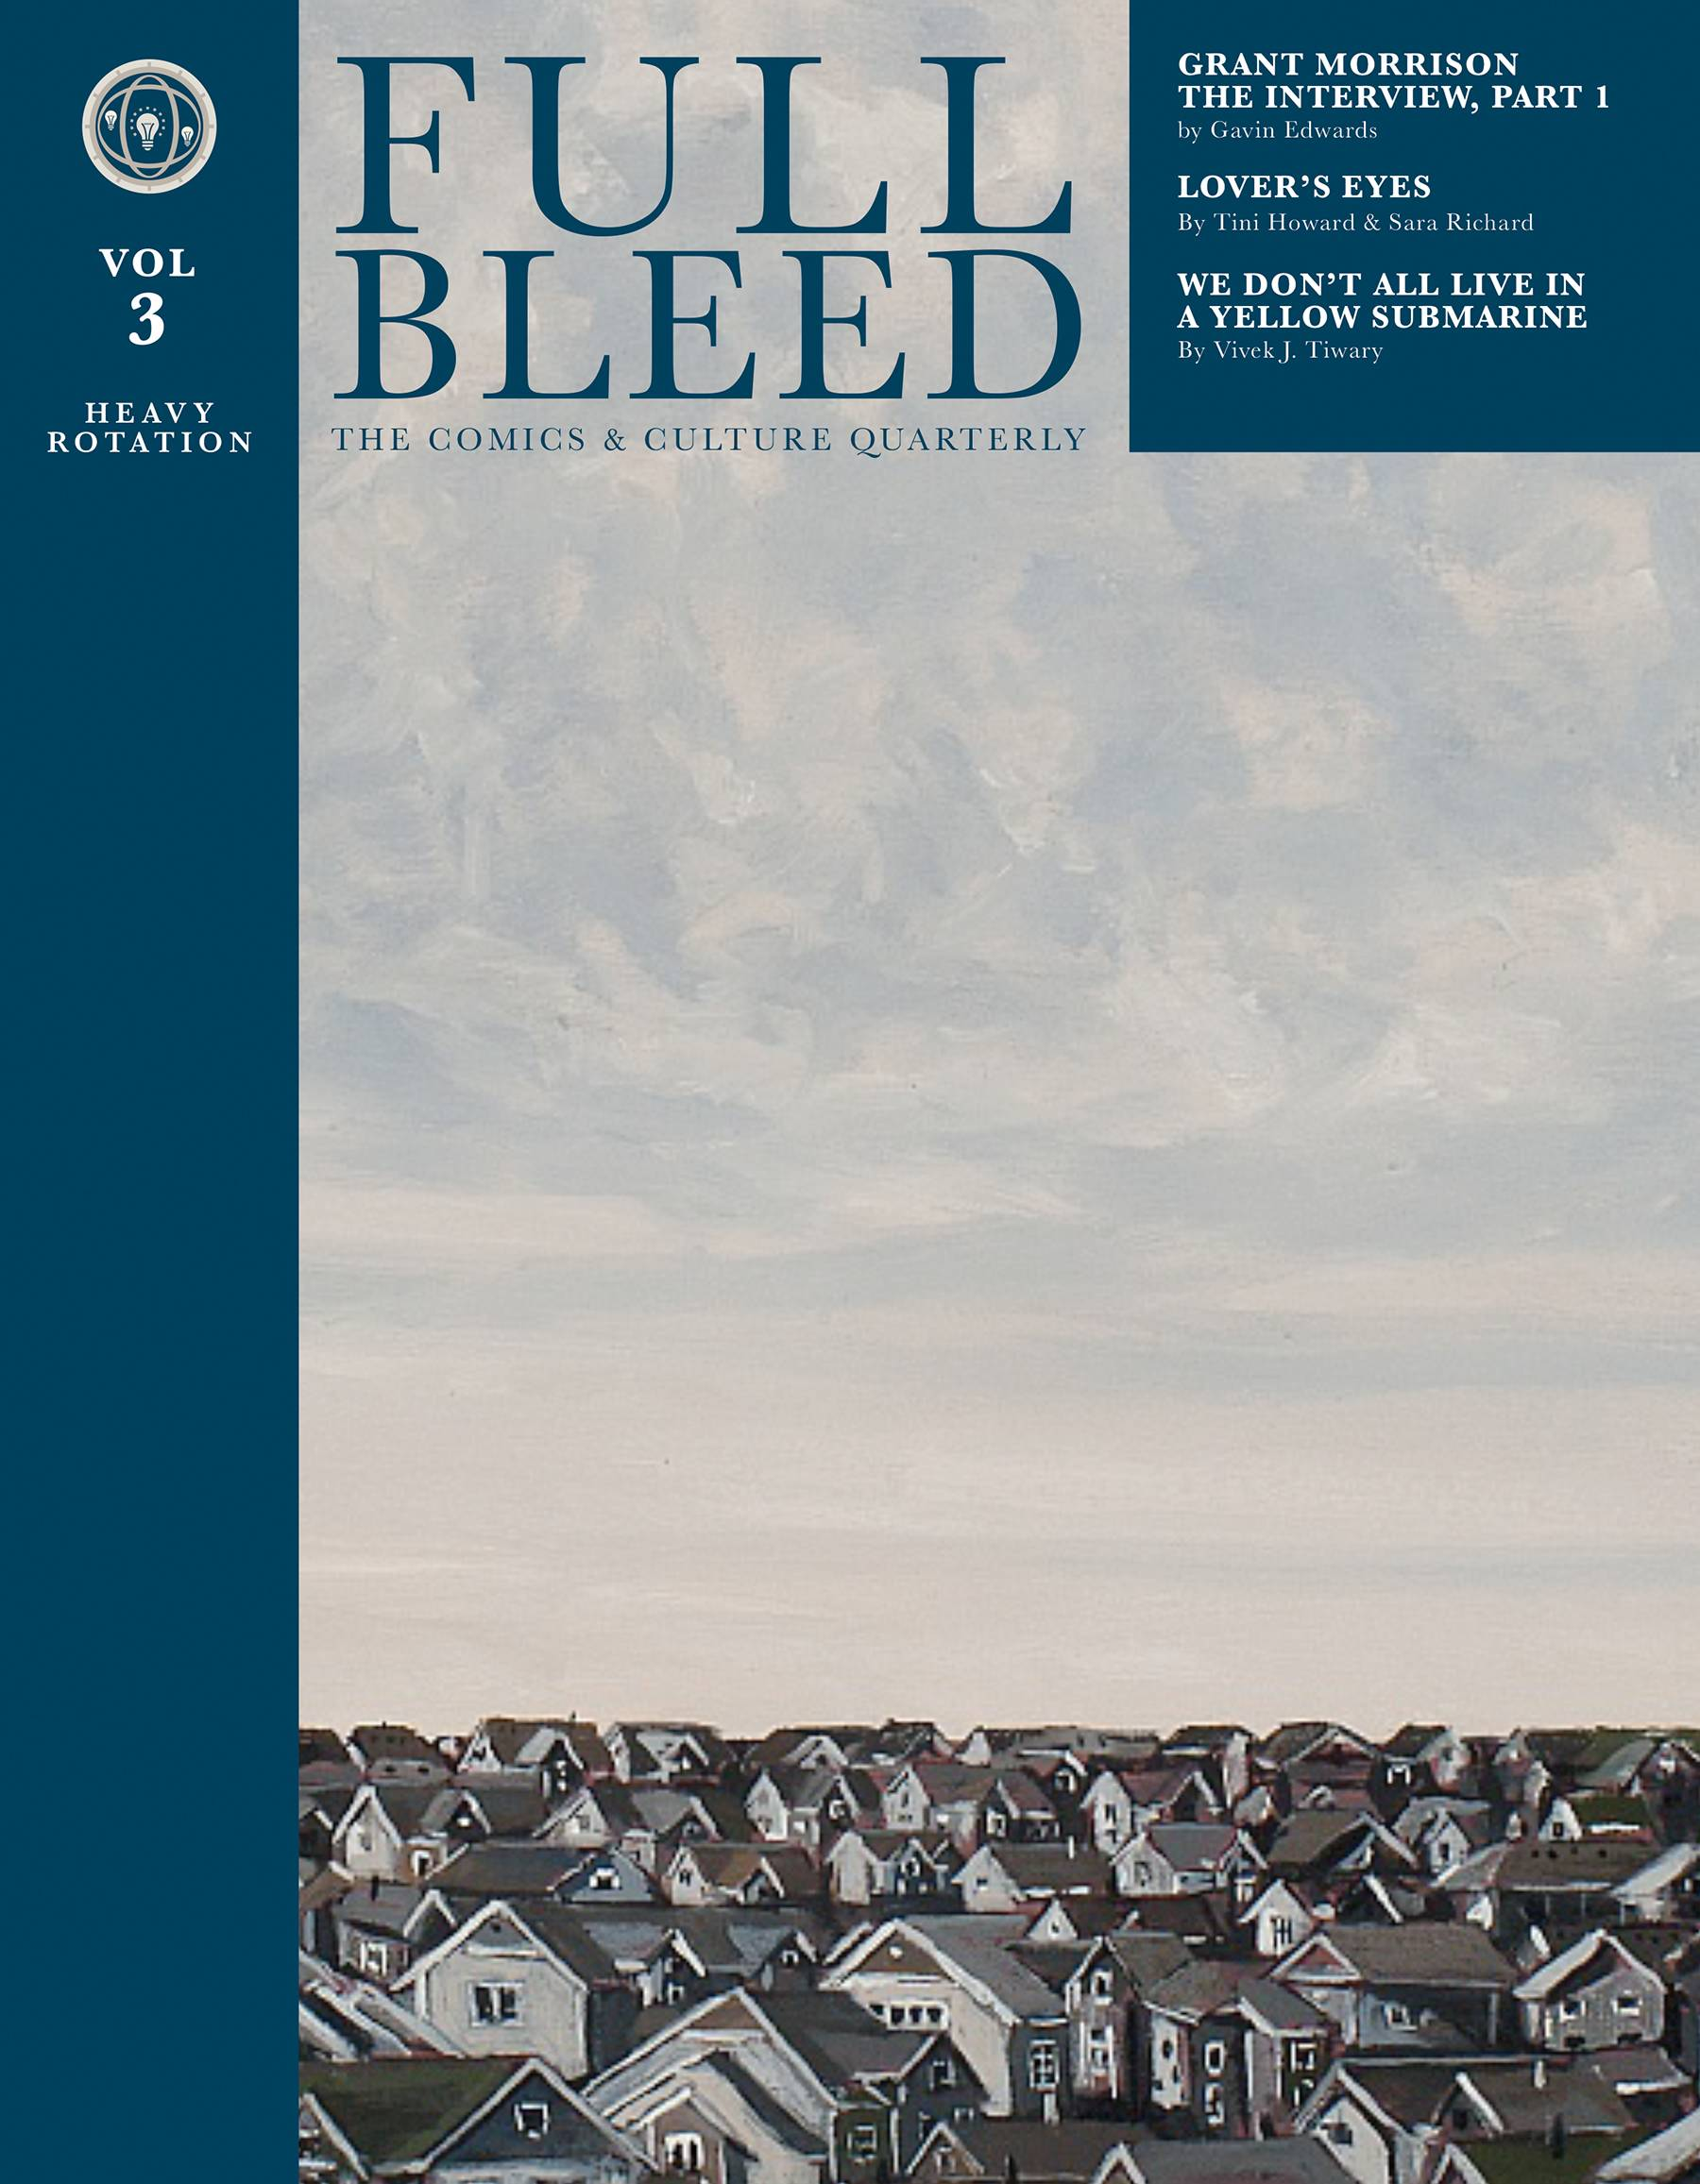 FULL BLEED COMICS & CULTURE QUARTERLY HC 3.jpg